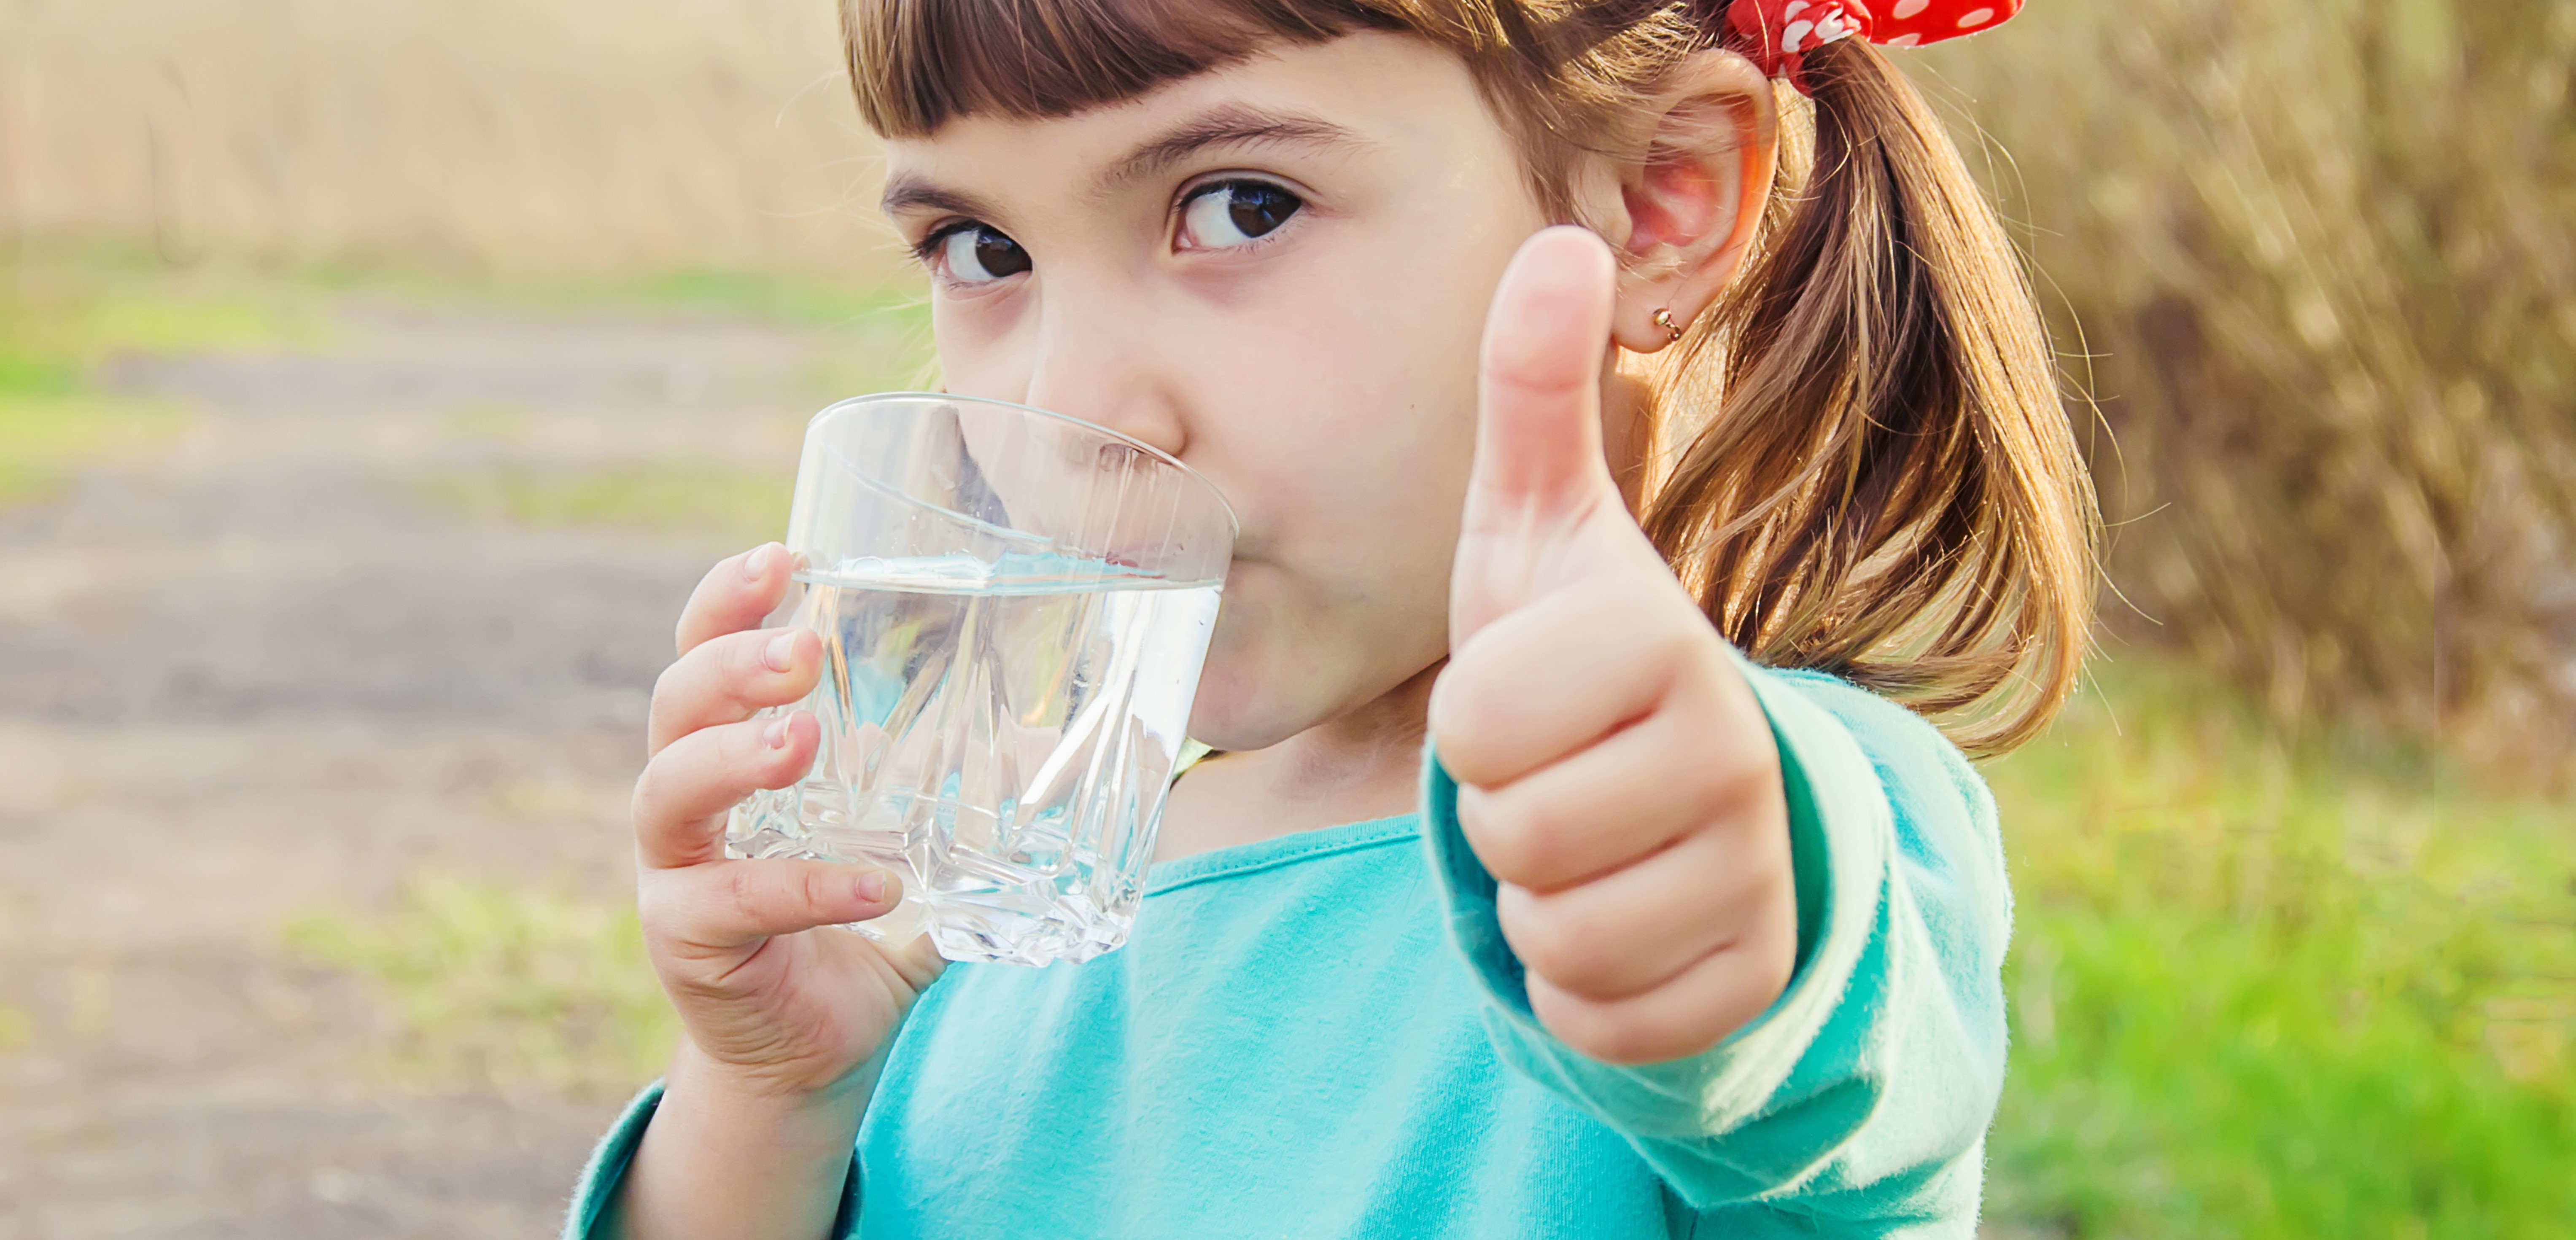 image: child with glass of water